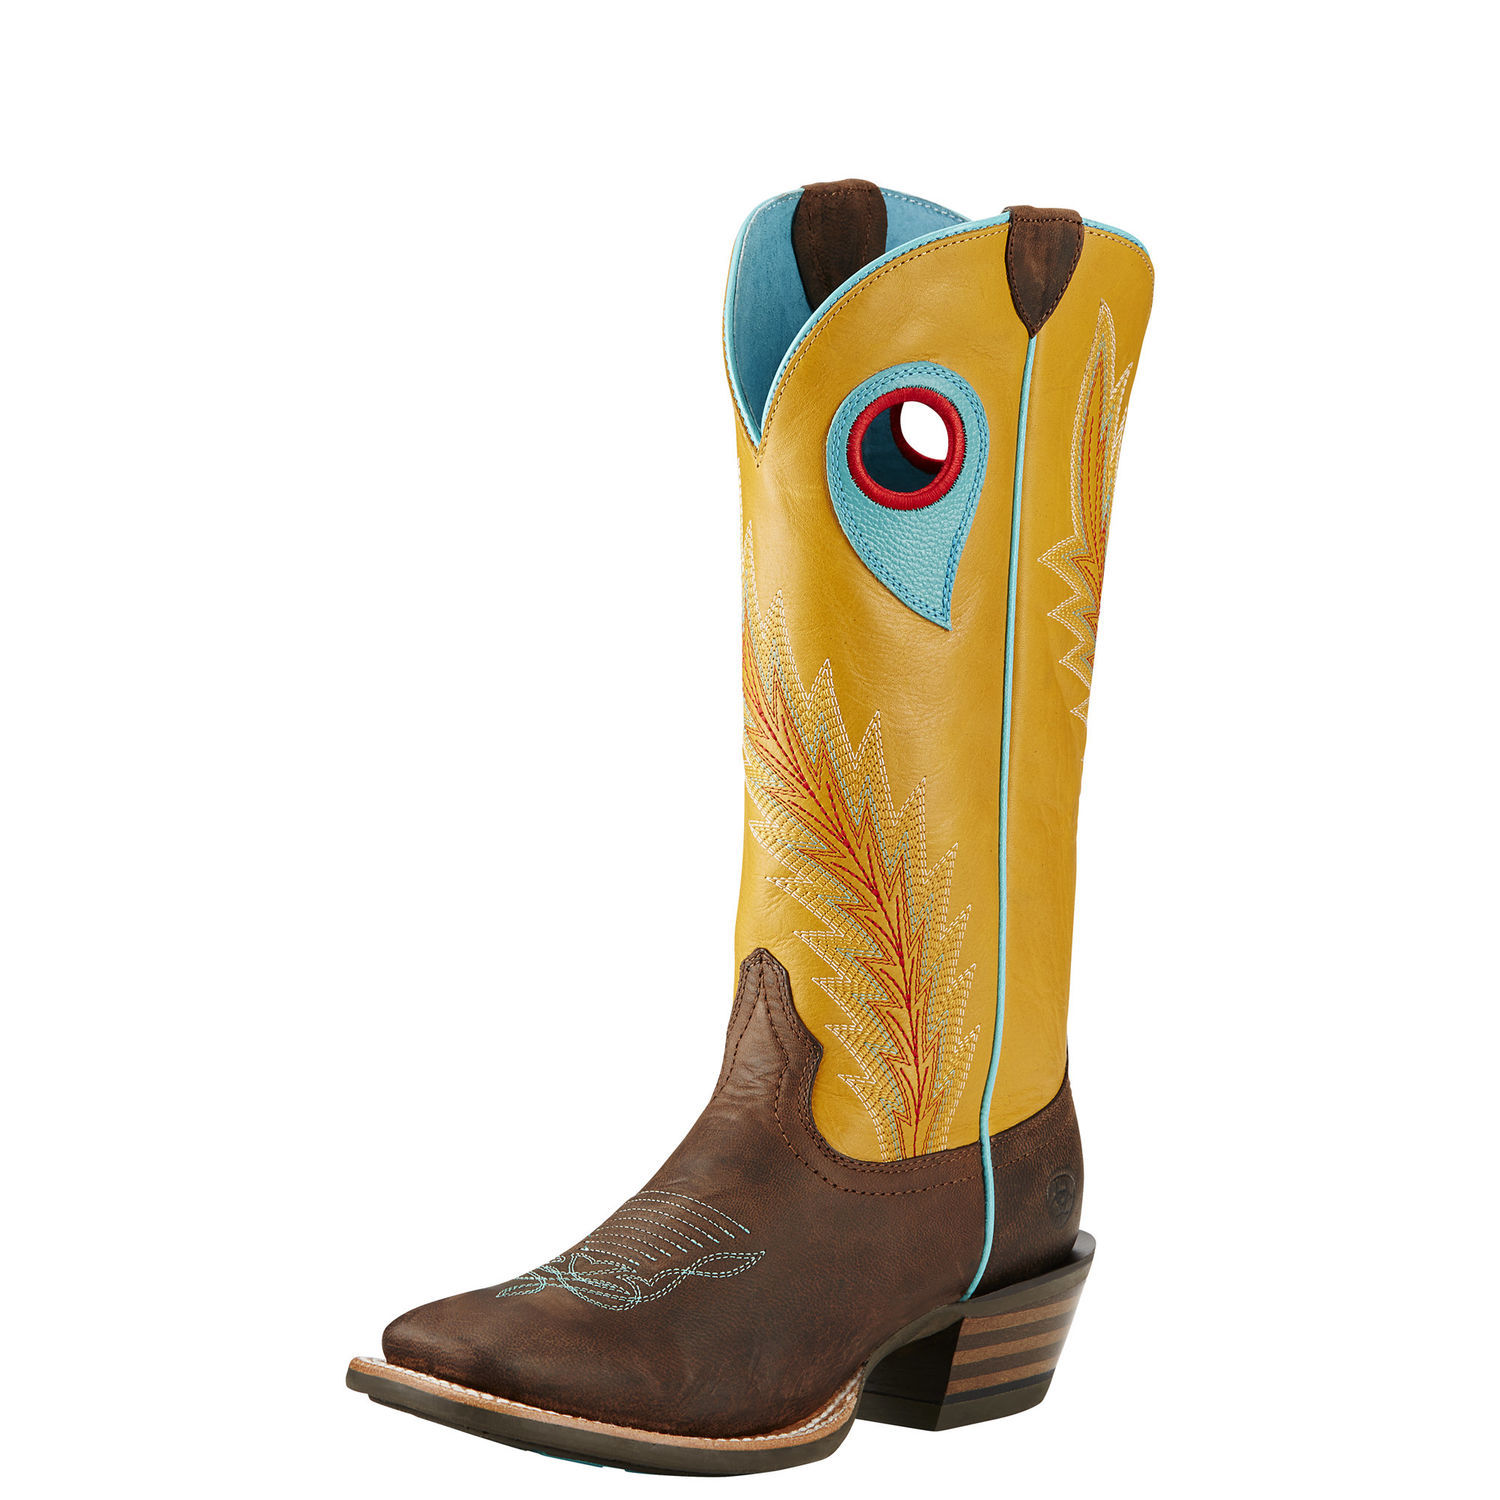 Ariat Desperado Square Toe Leather Western Boot by Ariat